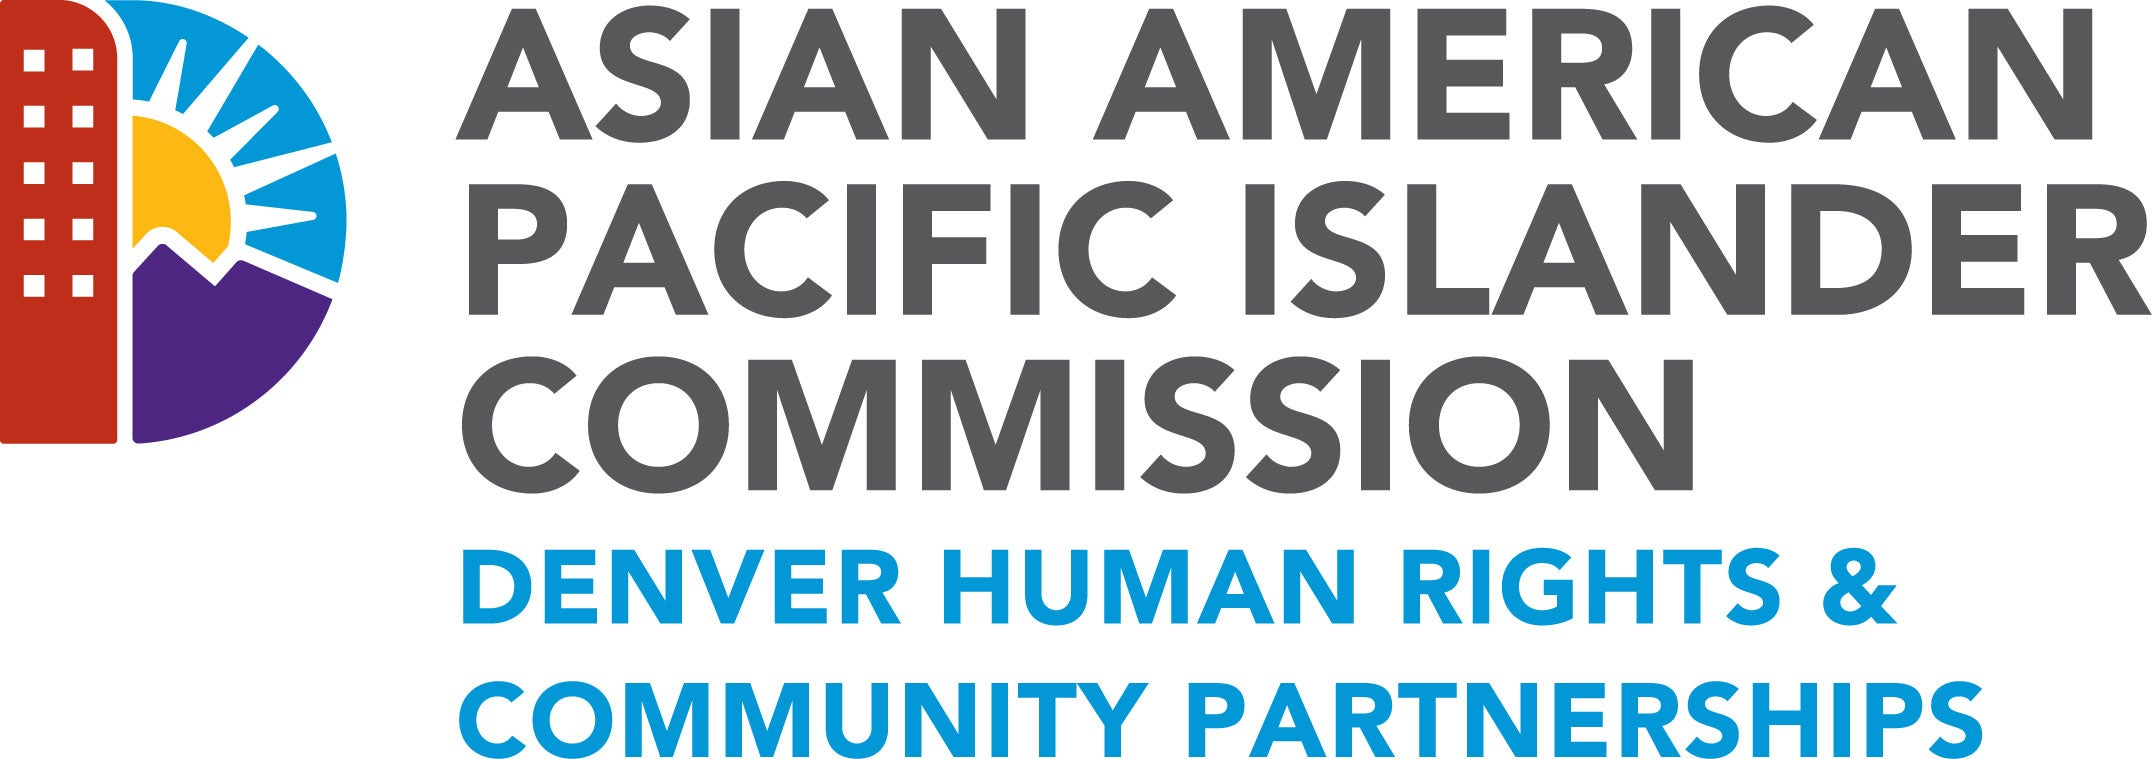 AsianAmericanPacificIslanderCommission_4C_RGB.JPG